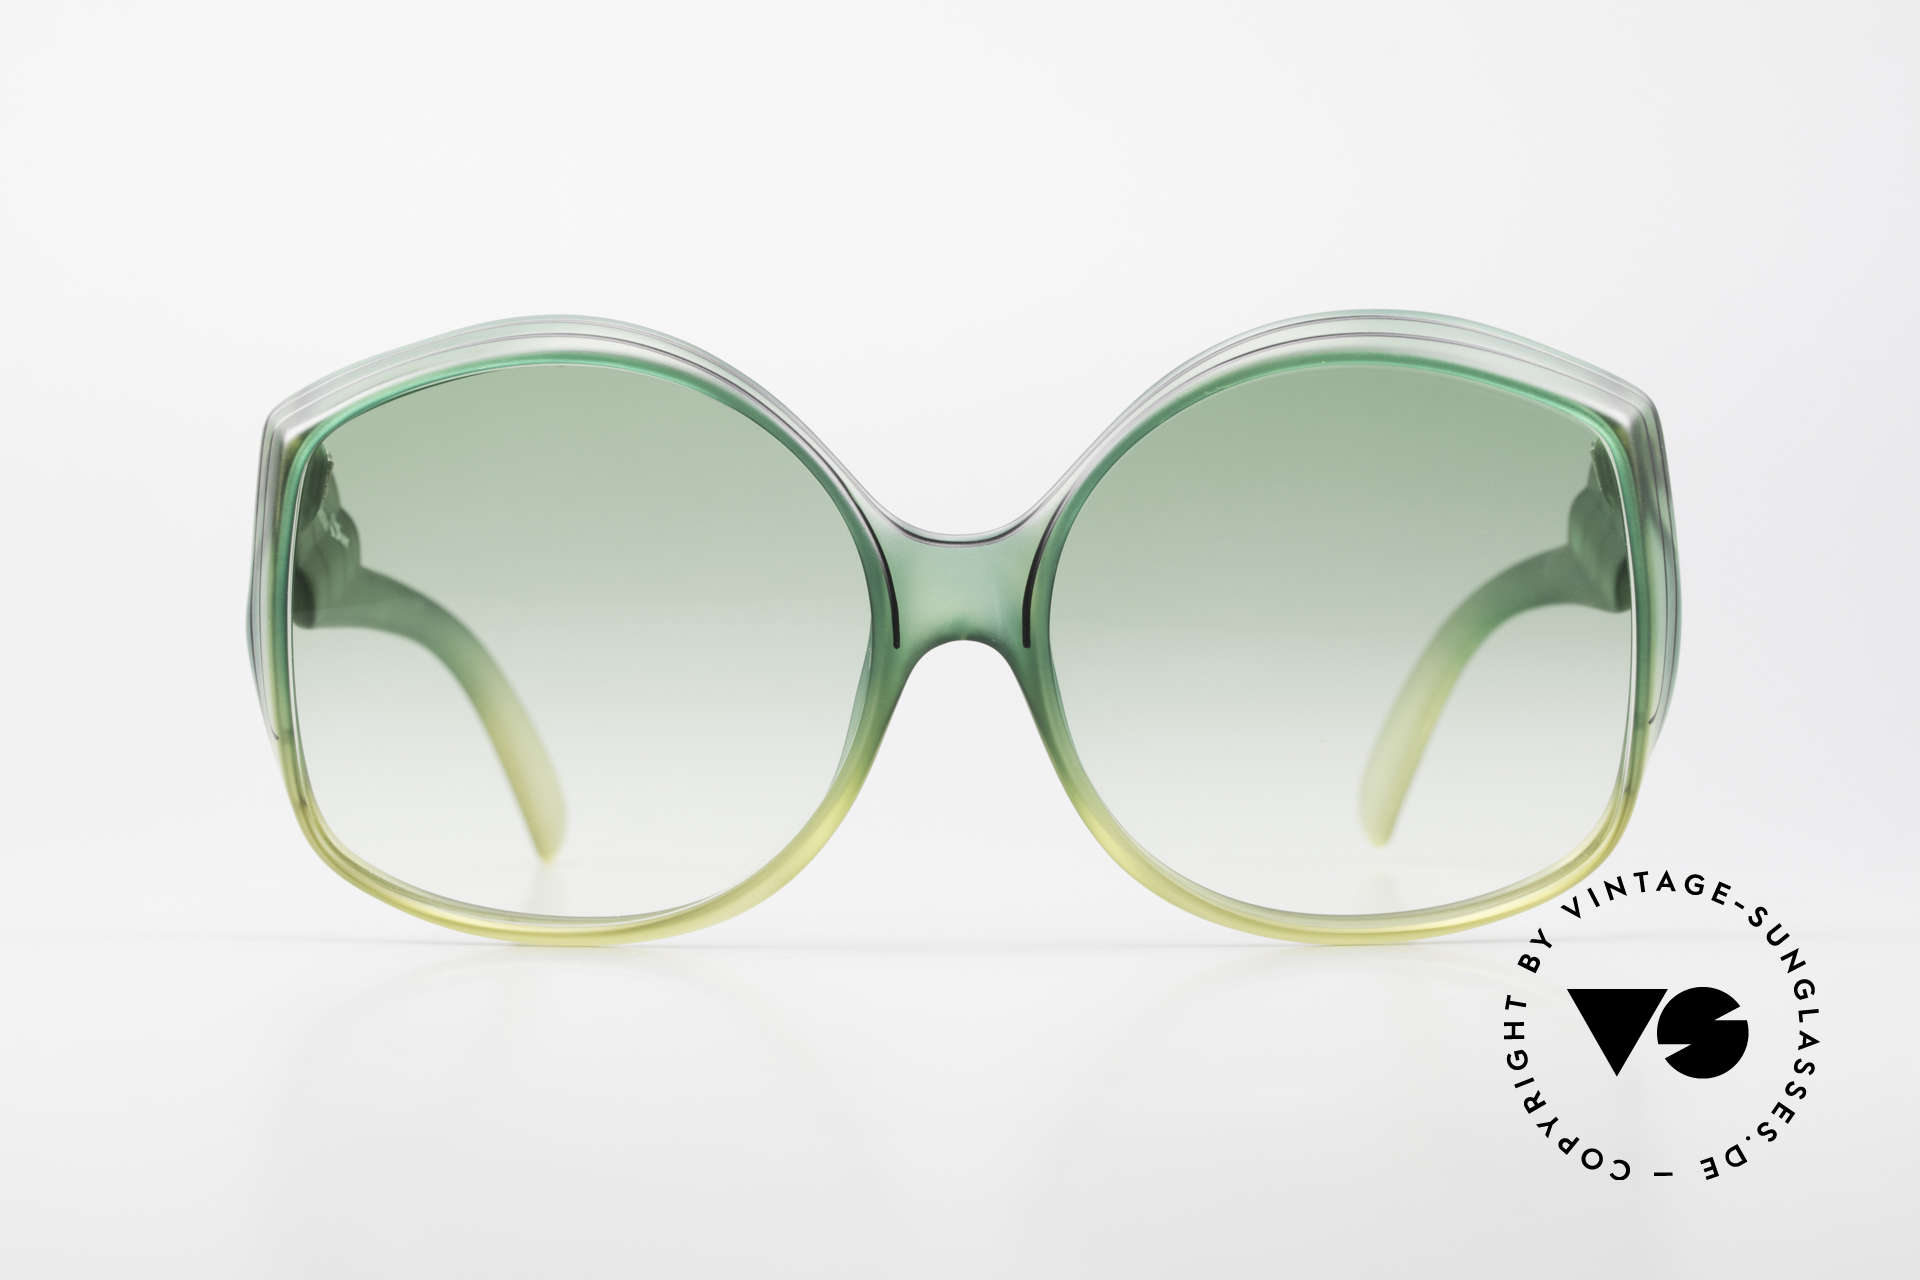 Christian Dior 2041 XXL 1970's Ladies Sunglasses, one of the first sunglass' models by Christian Dior, ever, Made for Women